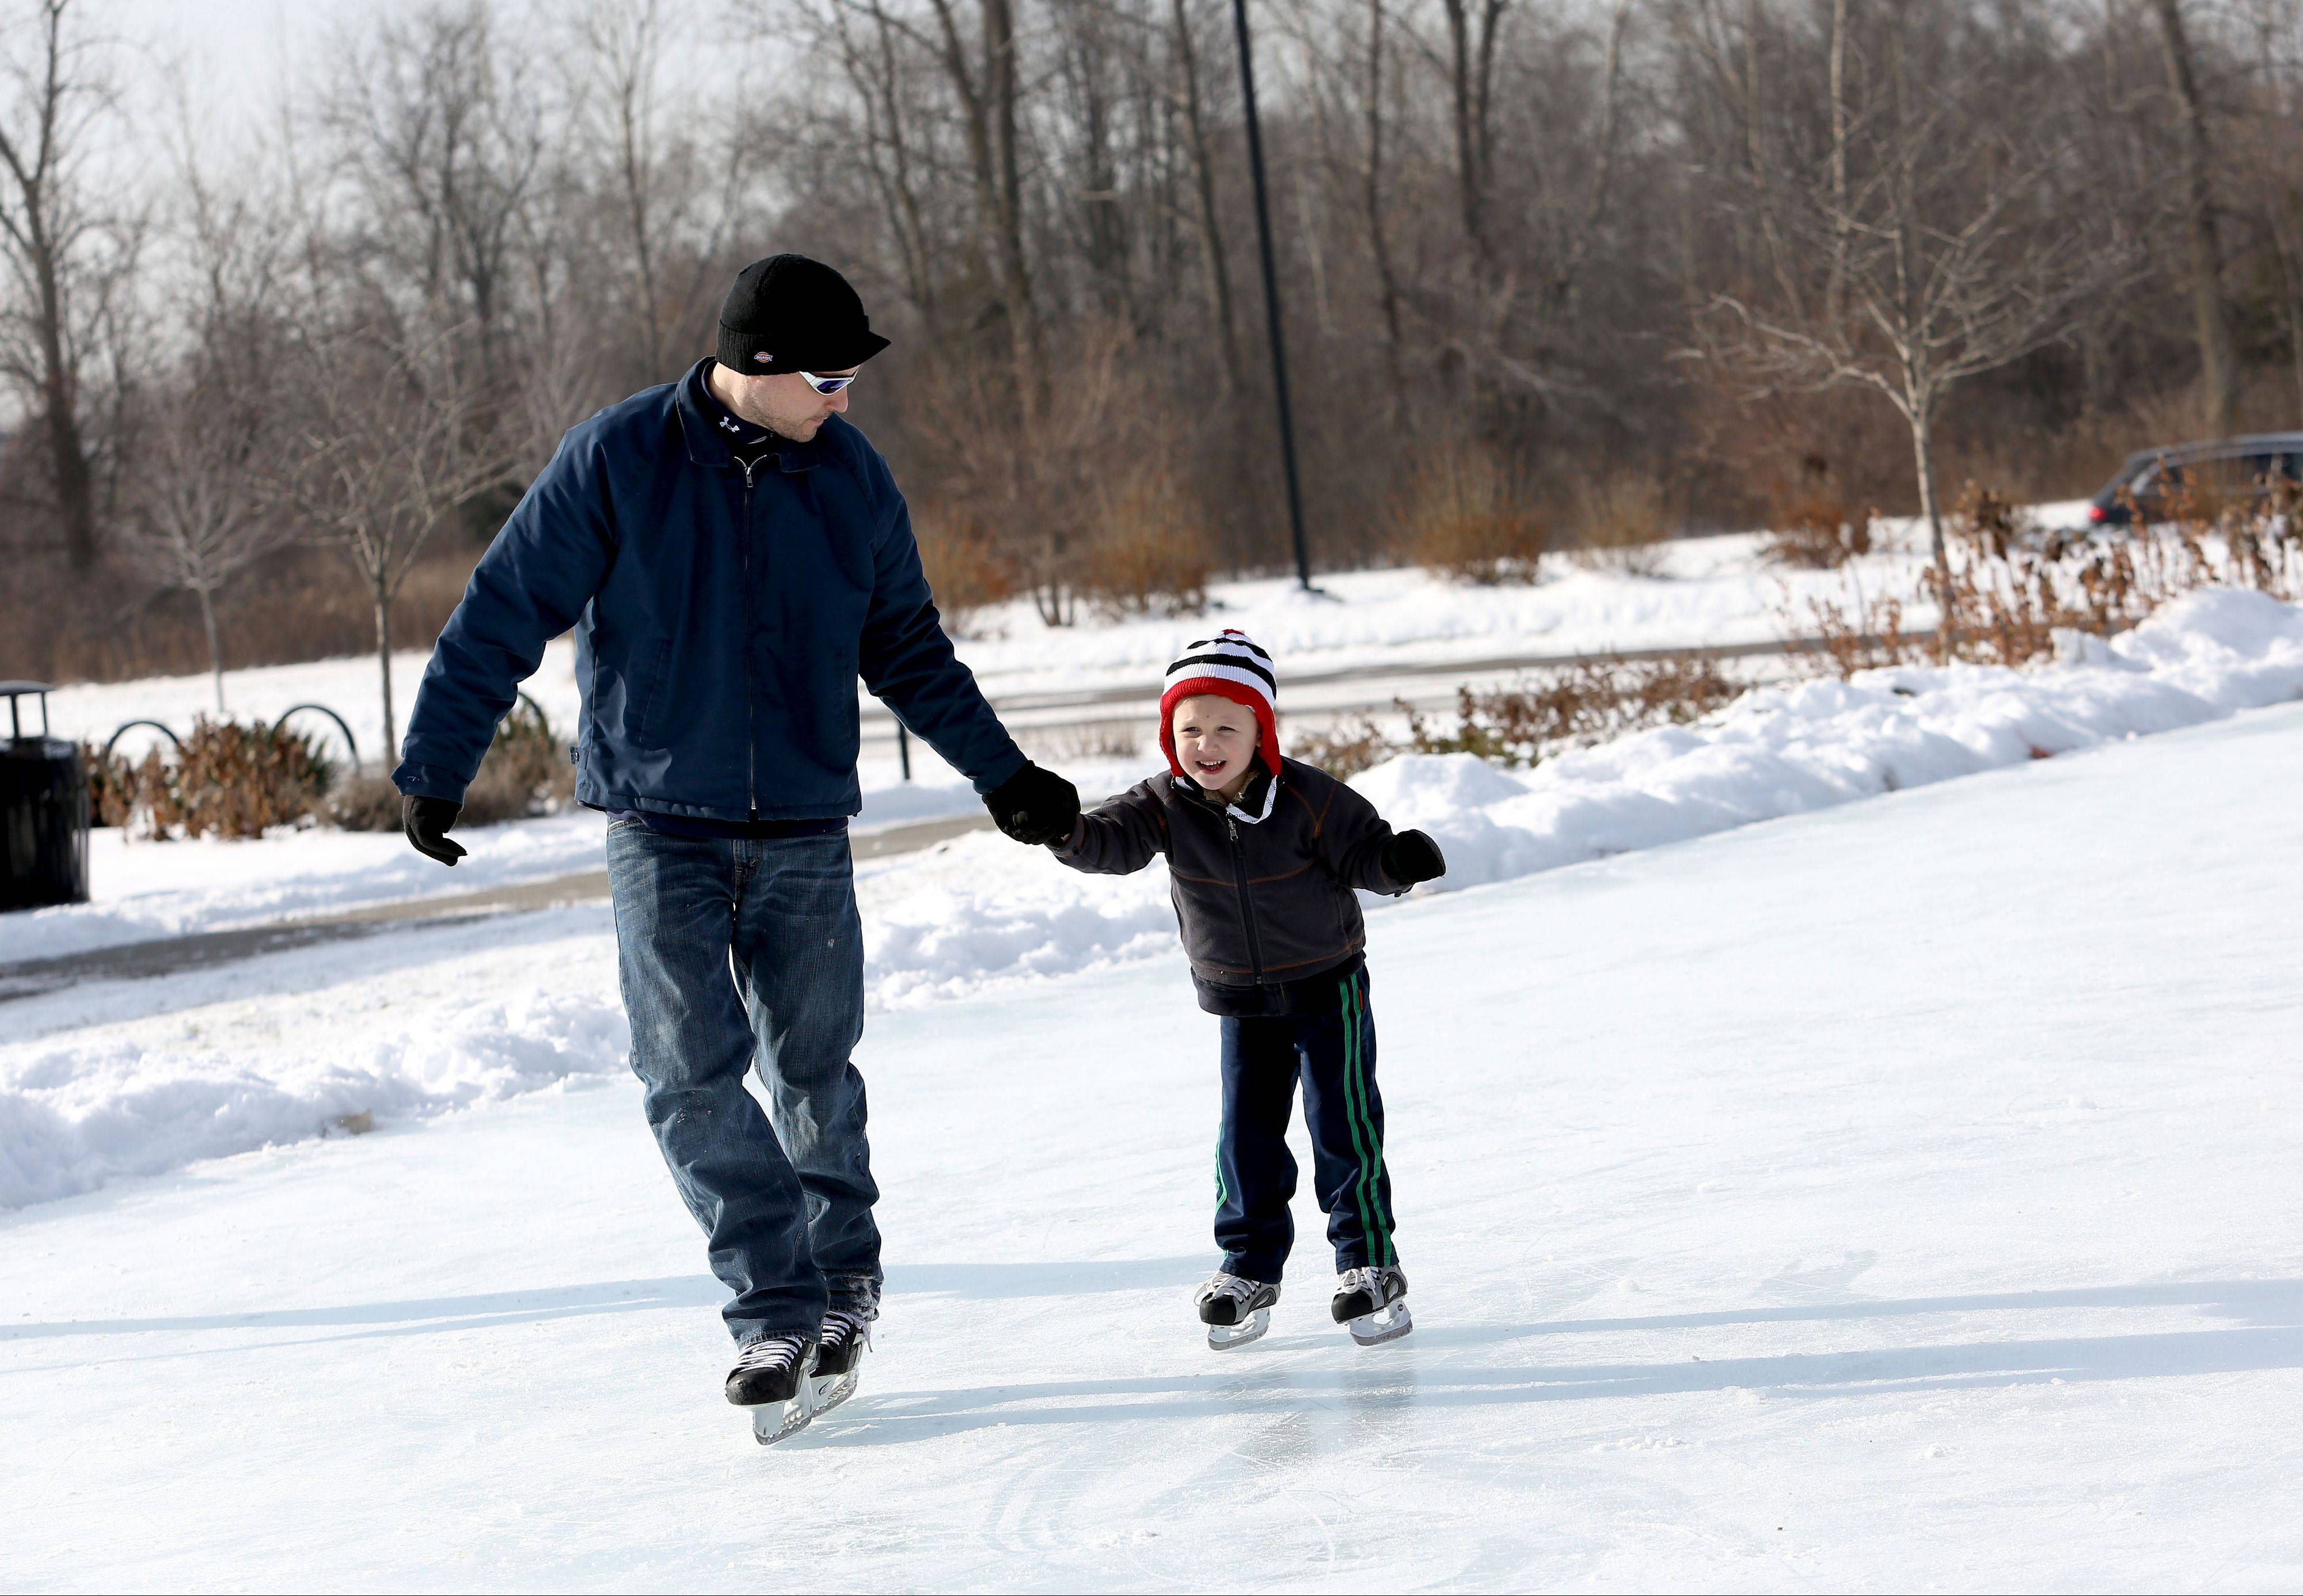 Eric Williamson of Naperville helps his son, Oslo, 4, around the outdoor ice skating rink Friday at the Nike Sports Complex in Naperville. With only one skater on the rink, there was plenty of room for the father and son to get comfortable on the ice. �We�re taking advantage of no people,� Williamson said.